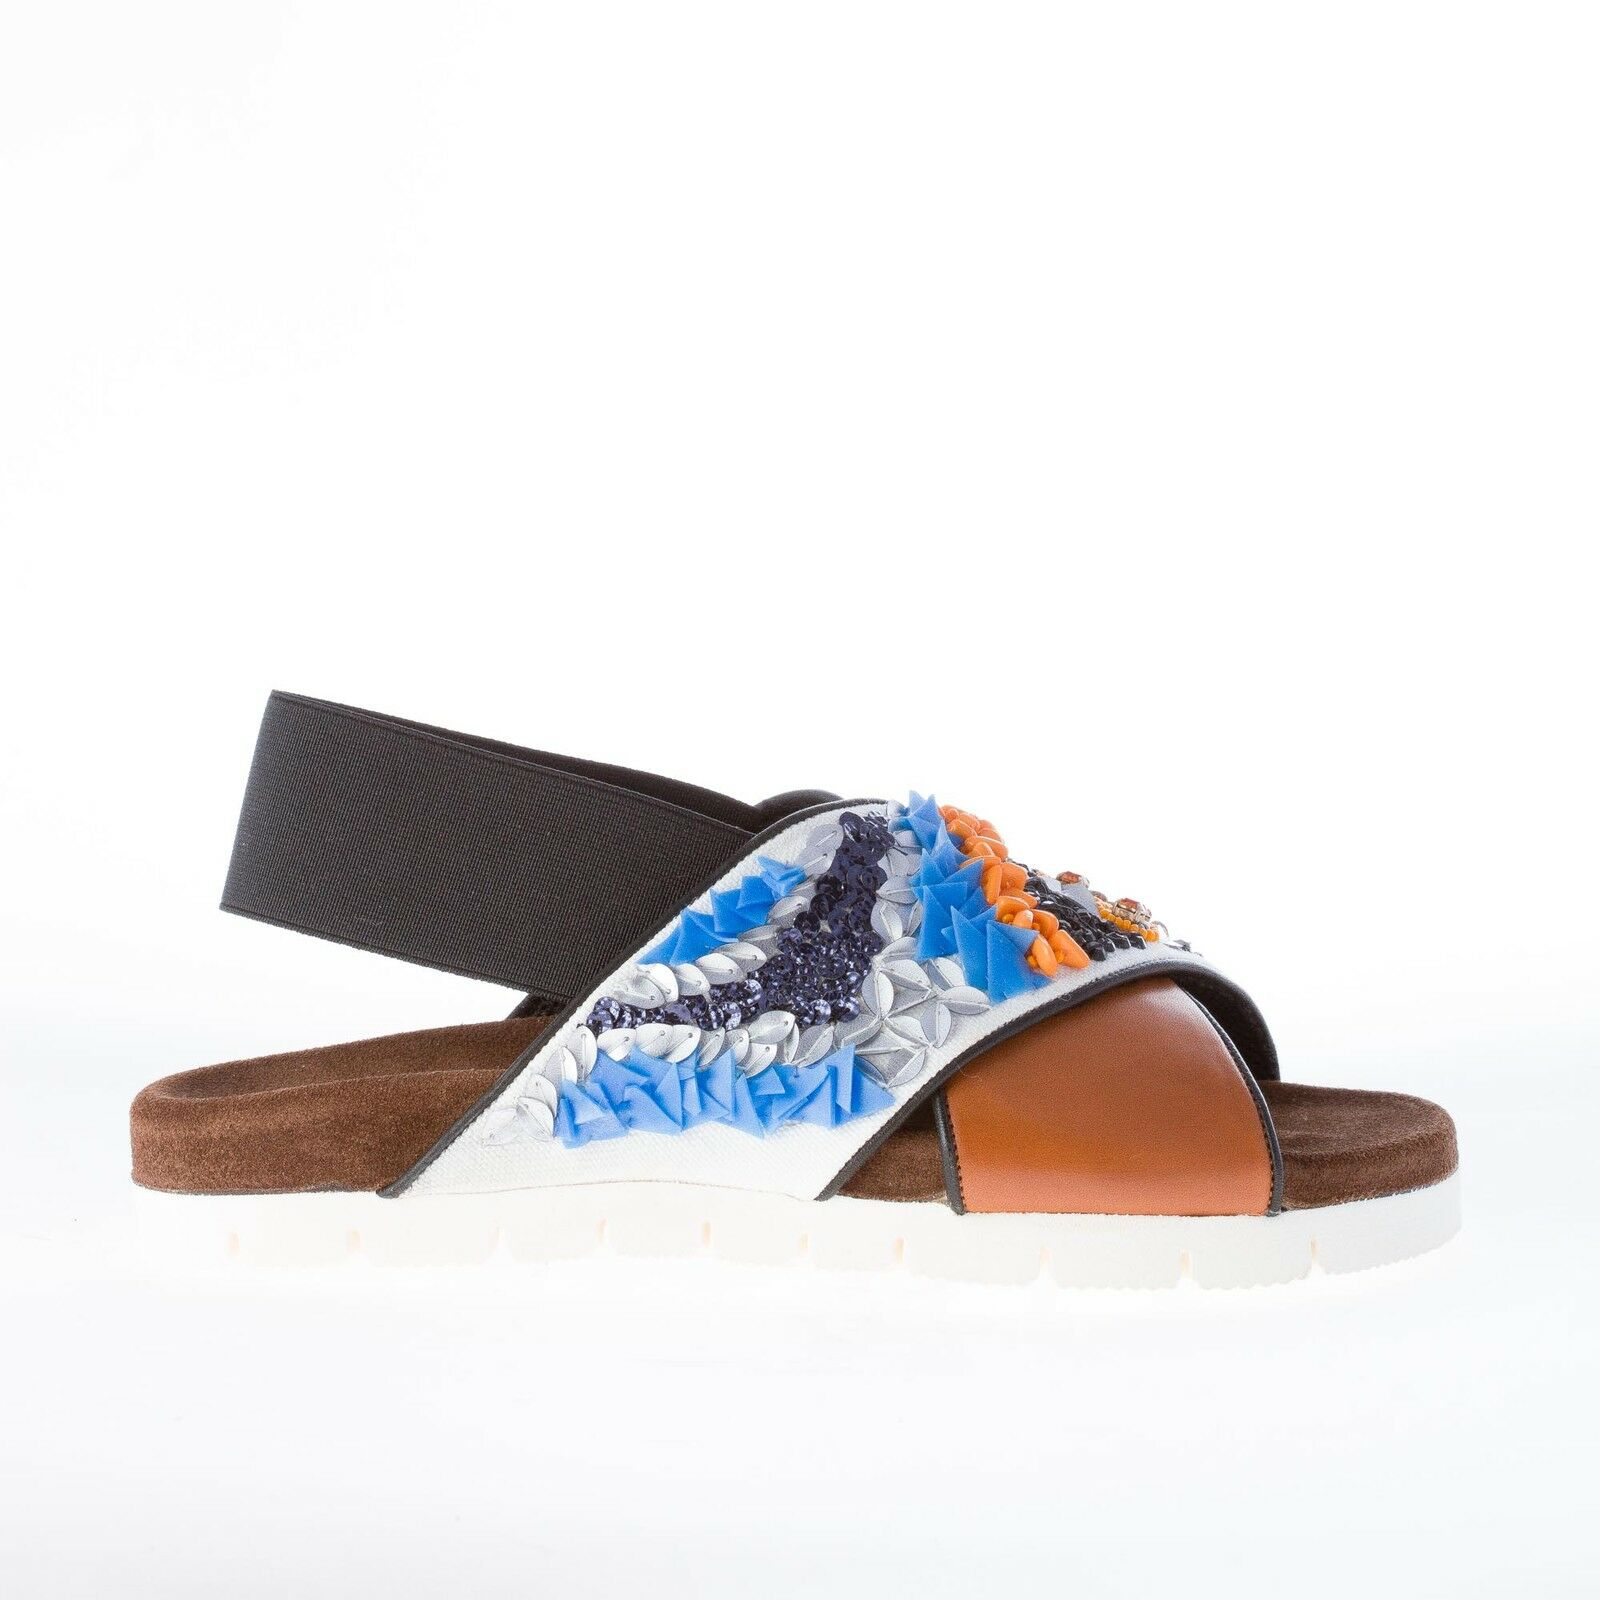 MSGM Chaussures Femmes marron leather with noir and blanc Fabric crisscross sandal